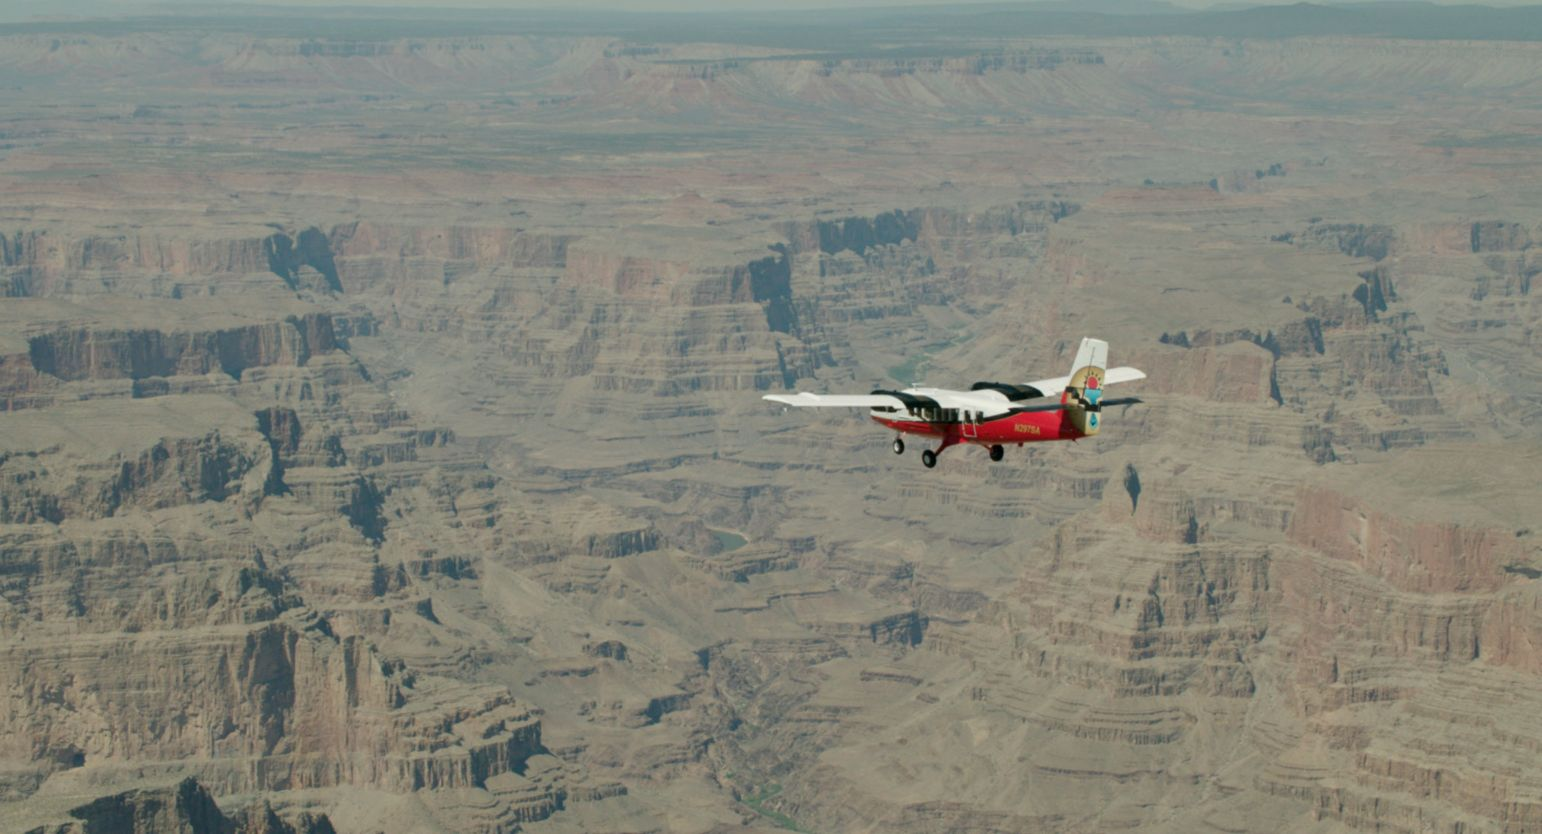 A Grand Canyon Airlines plane used to transport river rafters